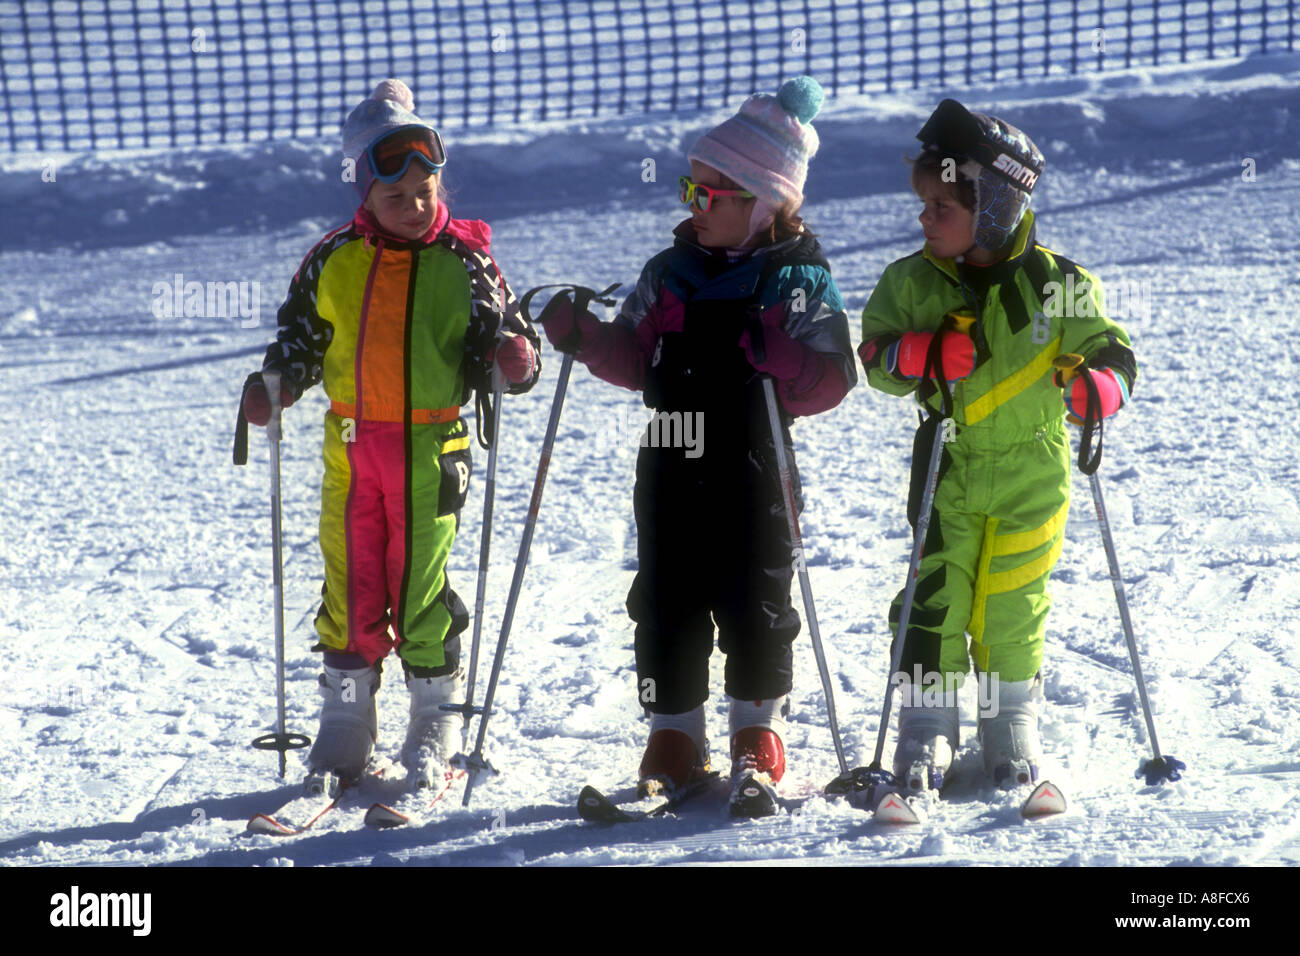 Three very young little girls dressed in colorful ski suits, learning to ski at Snow Summit ski resort, Big bear, CA.USA - Stock Image